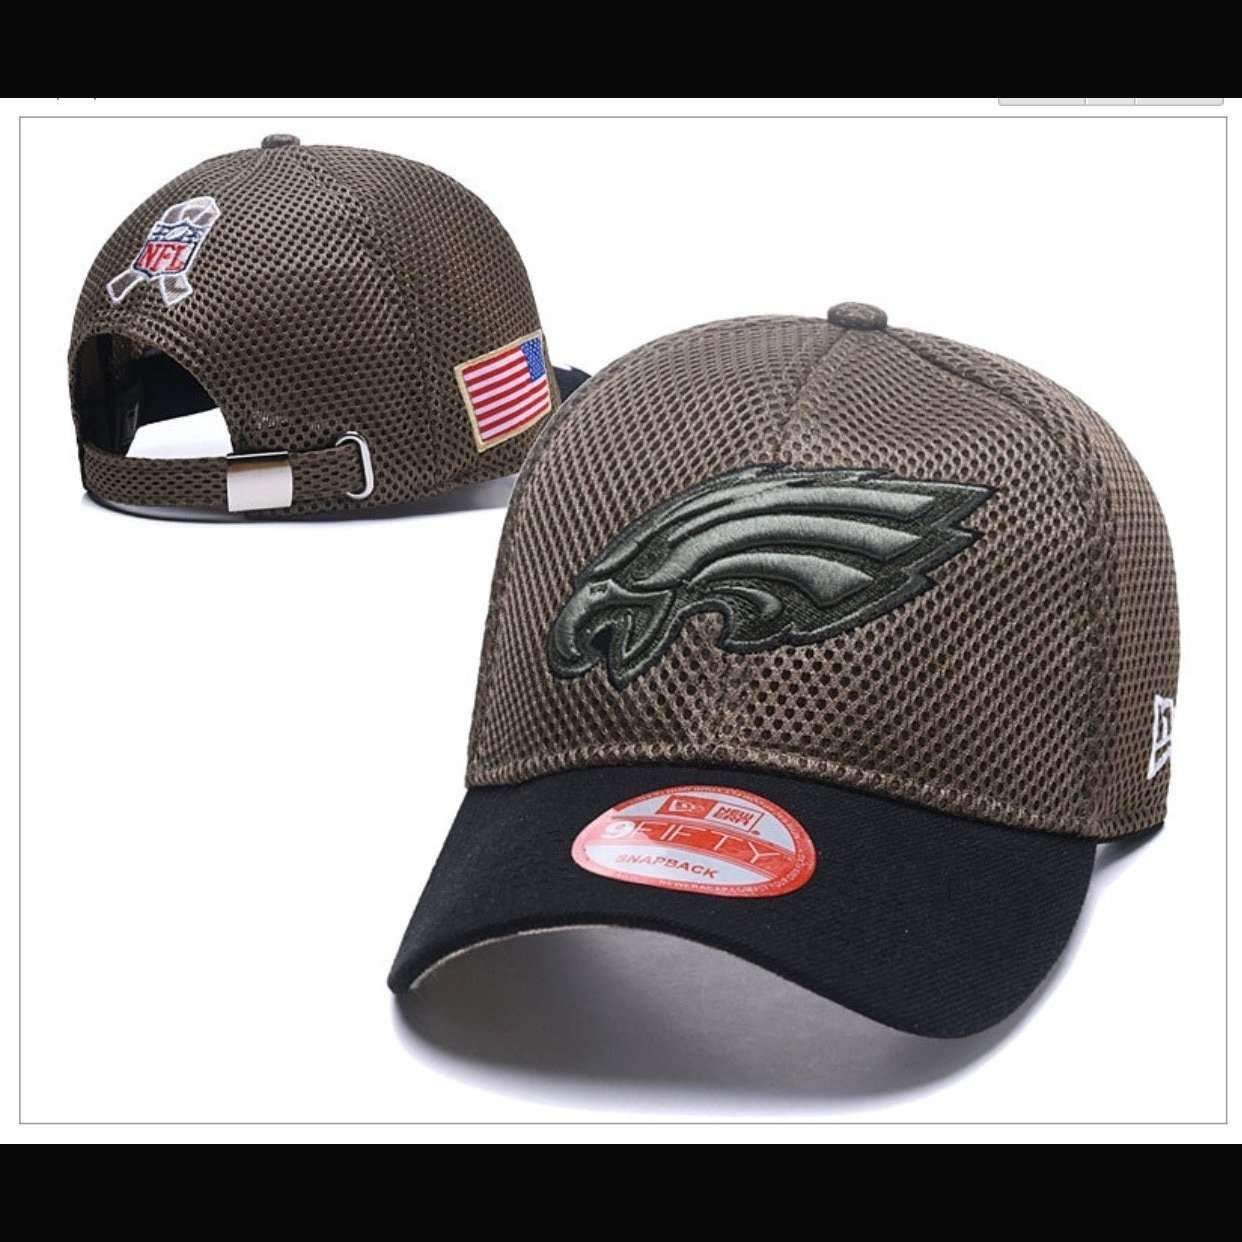 060f182e13cfb1 New High Quality Philadelphia Eagles New Era 9Fifty 9Forty Snapback & 'Dad'  Hats. Fast order processing and Free Shipping!